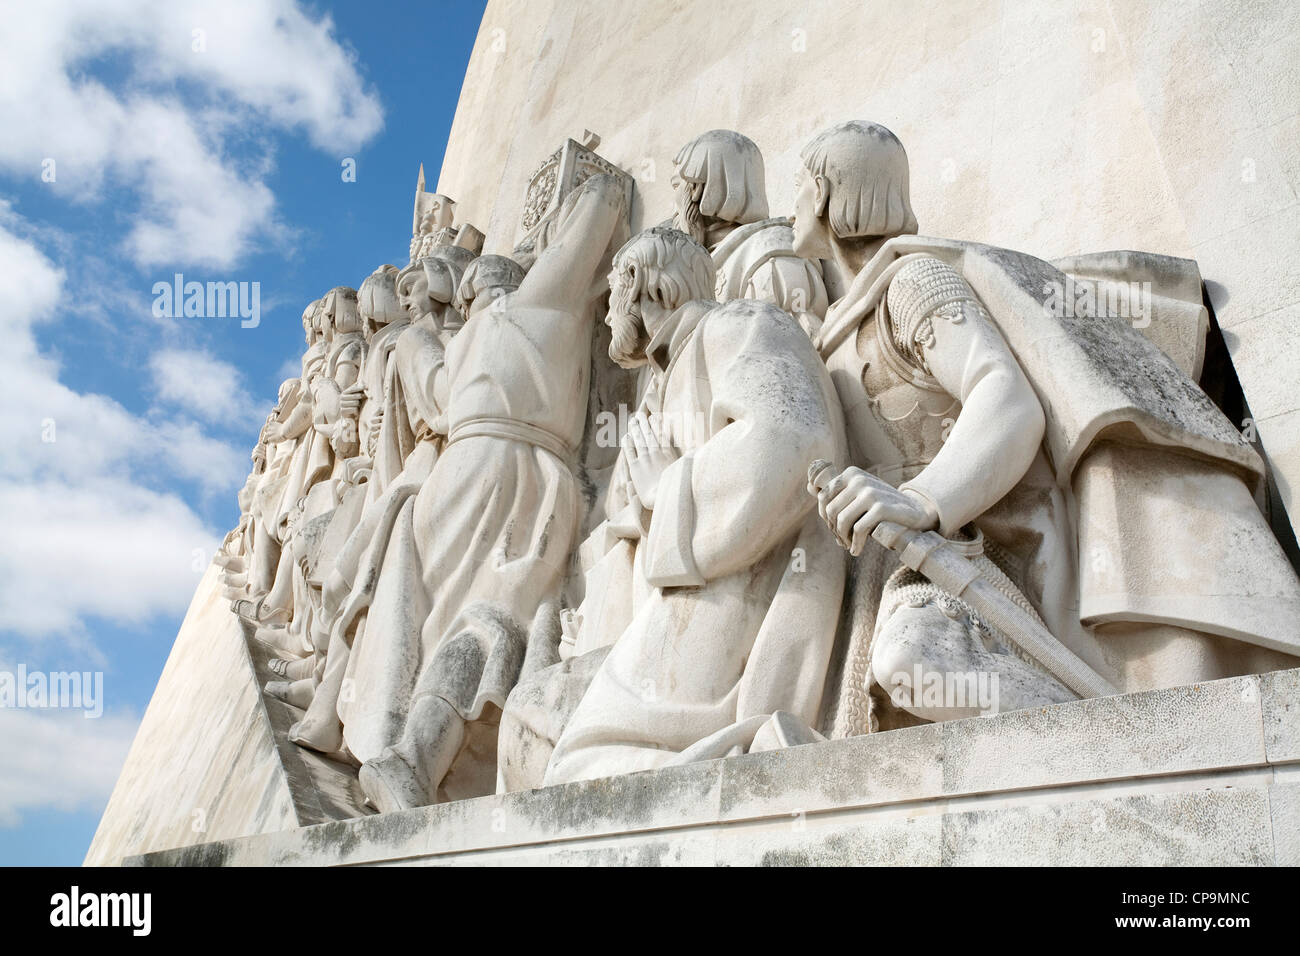 Monument to Portuguese Discoveries a large monument to sailors who carried out intensive maritime exploration by - Stock Image